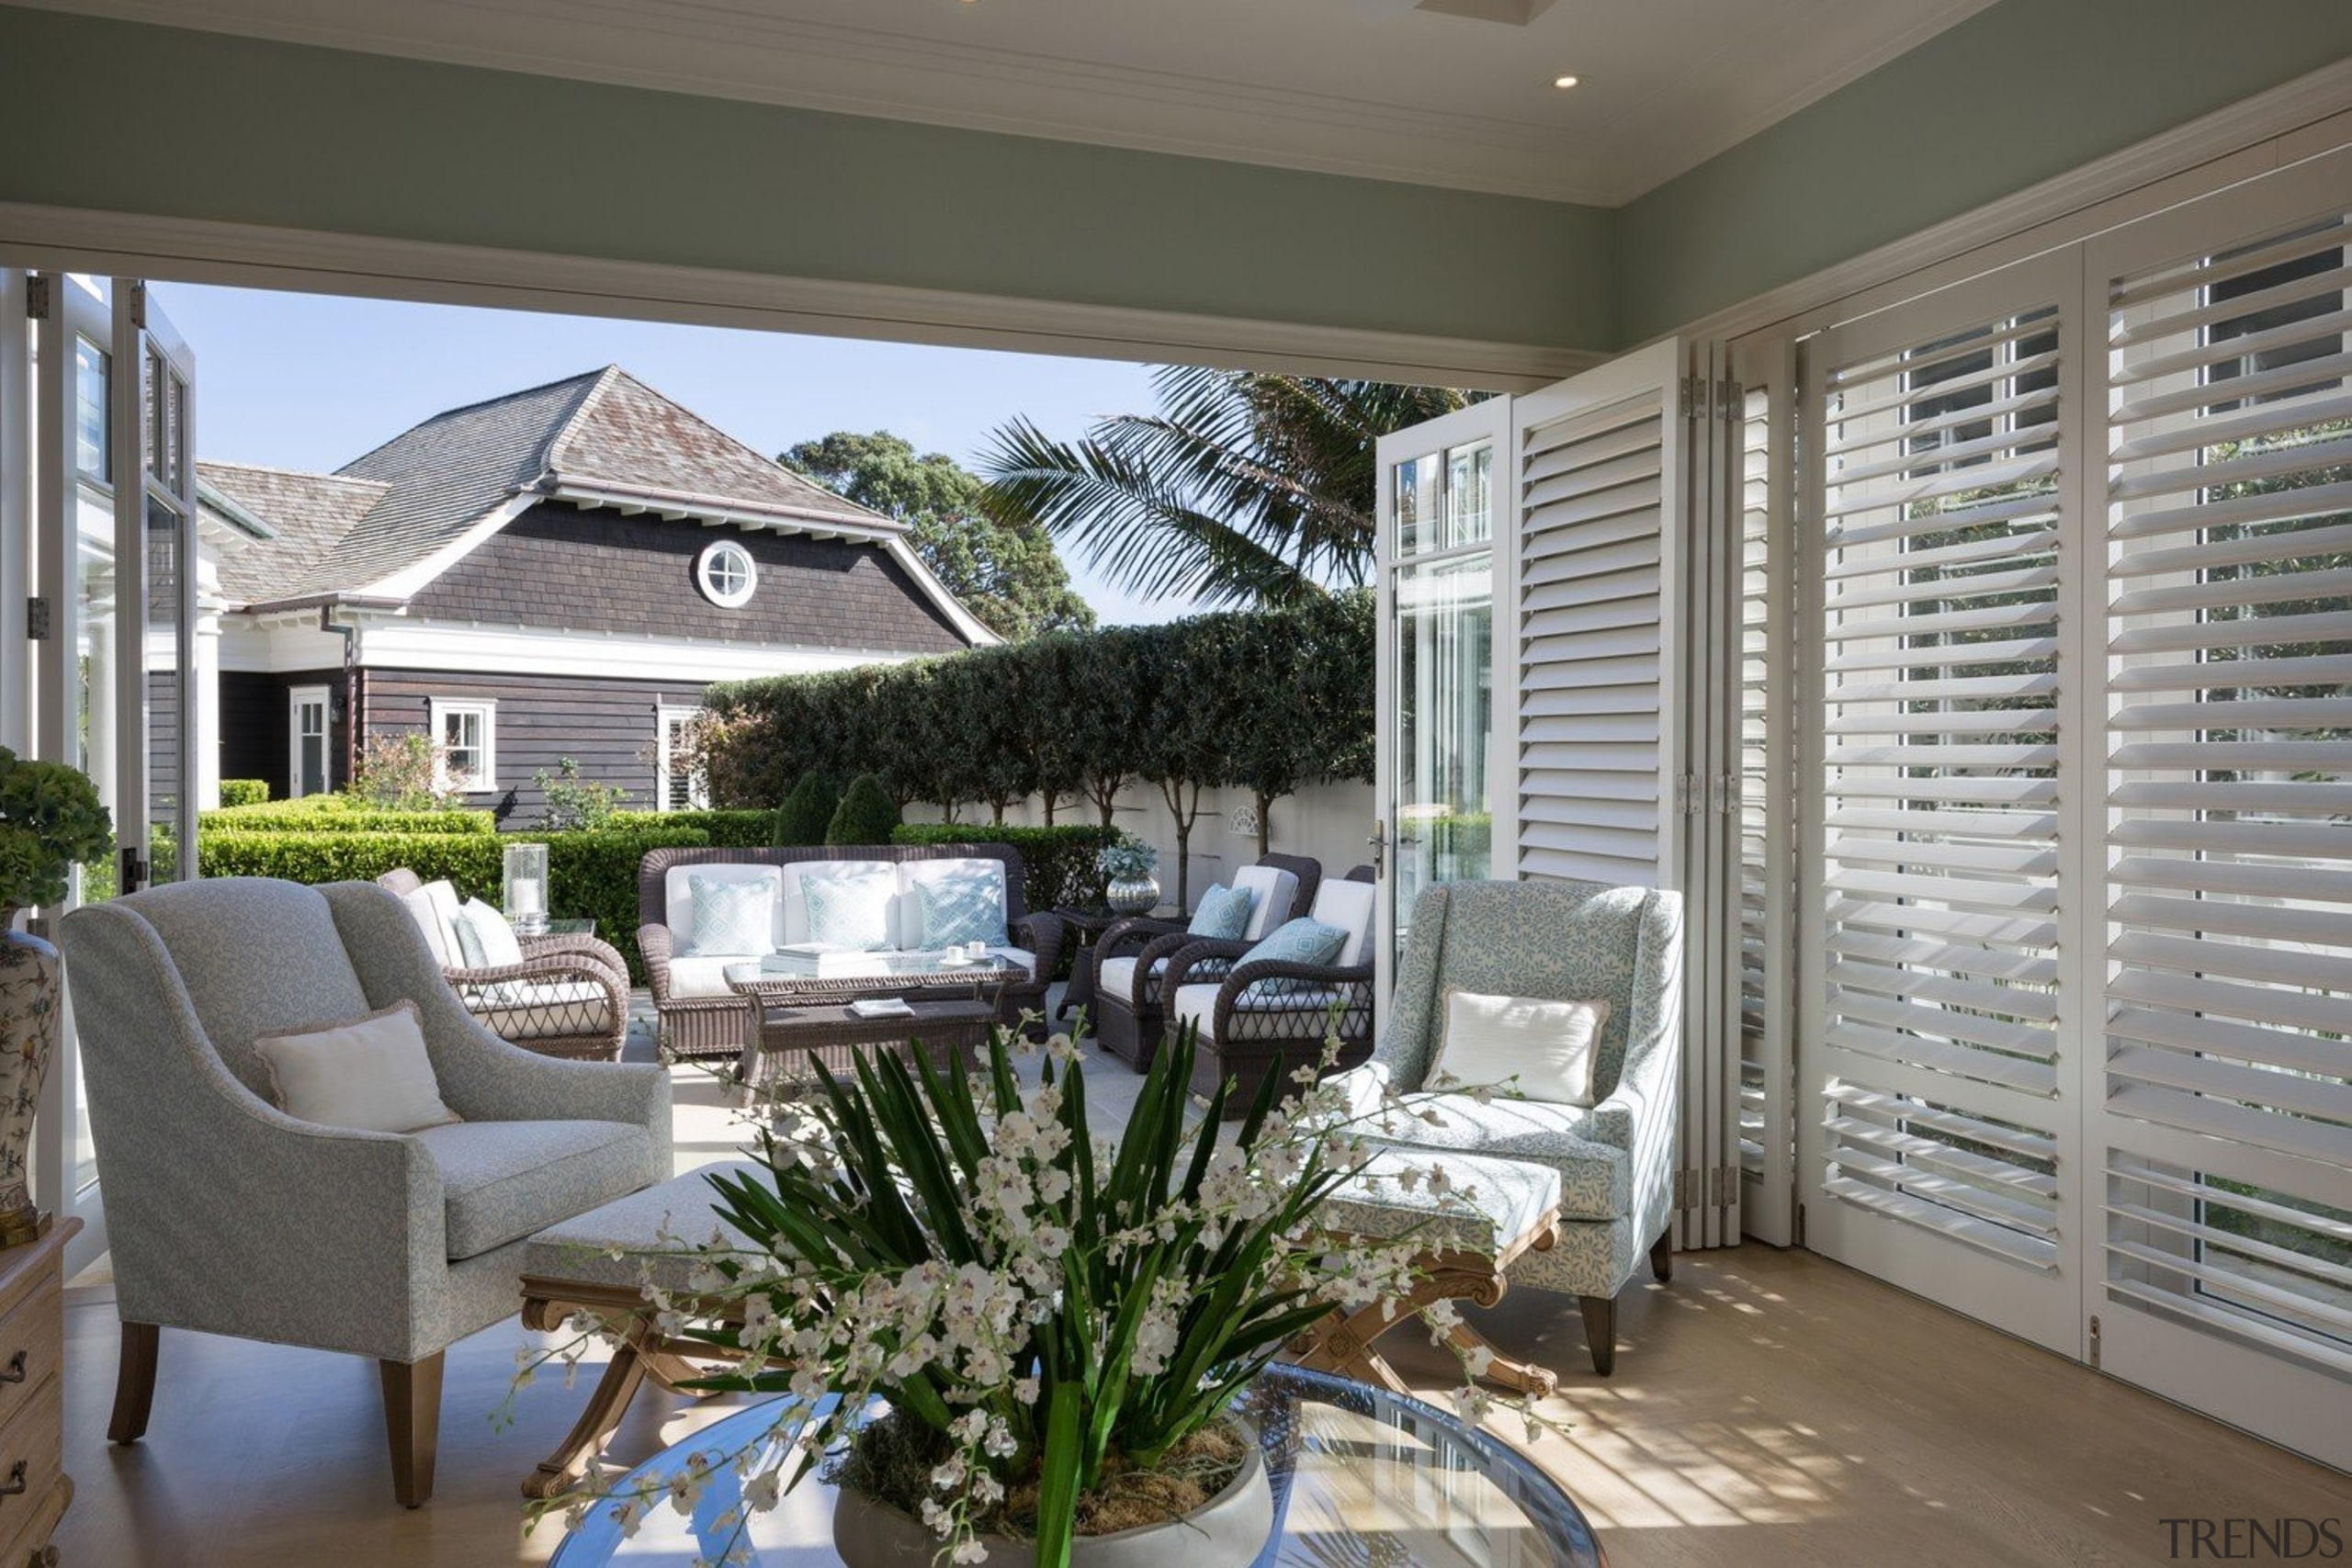 Living area - Living area - backyard | backyard, estate, home, house, interior design, living room, outdoor structure, patio, porch, real estate, window, window covering, window treatment, gray